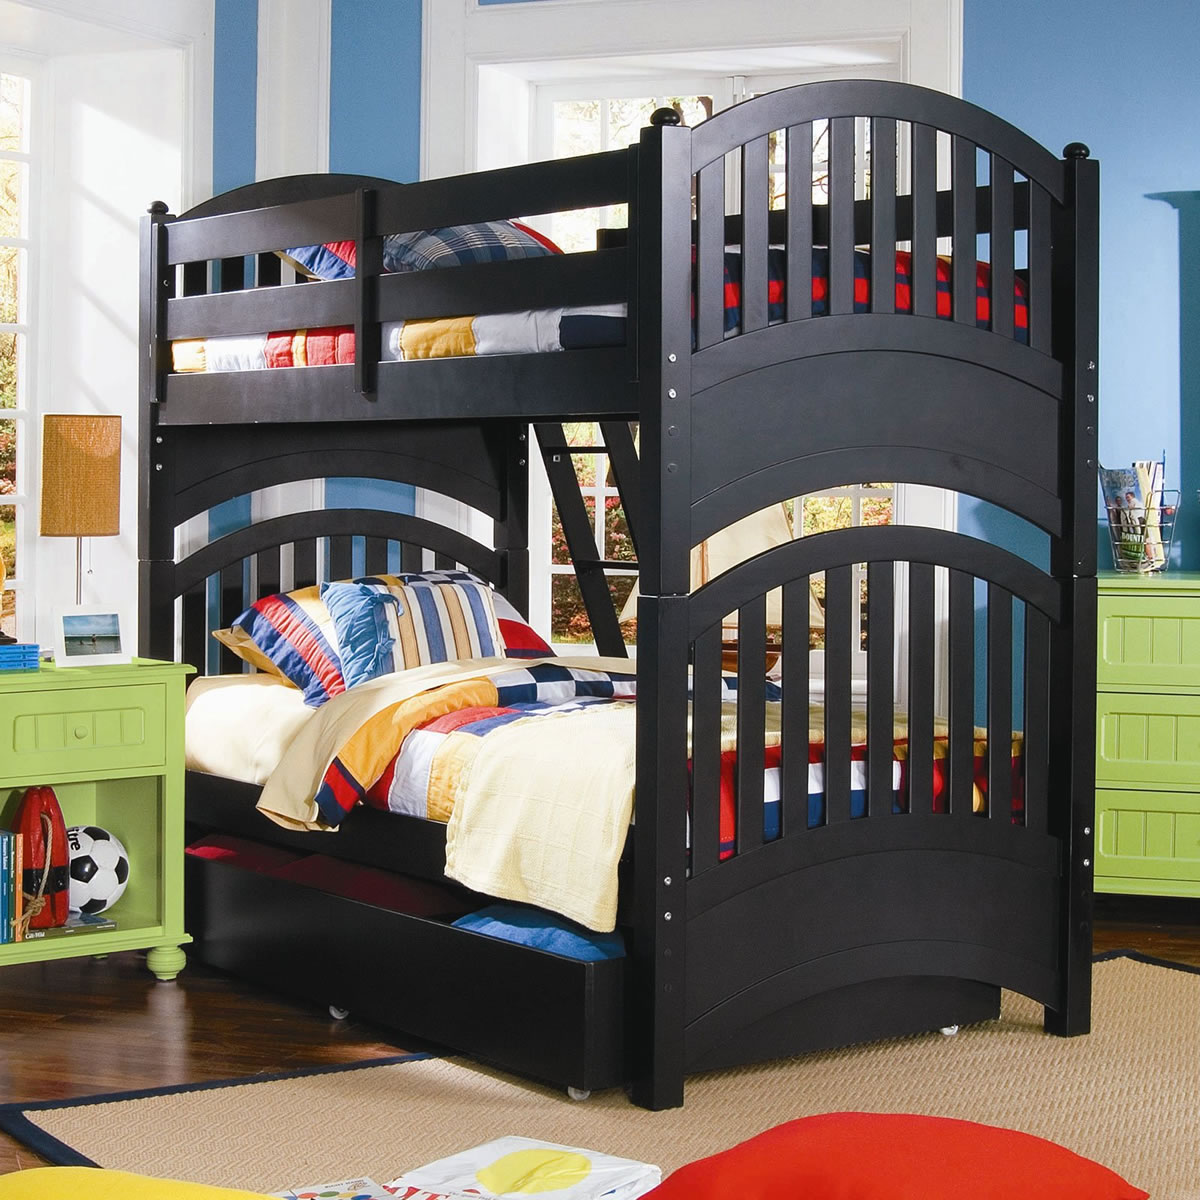 Lea furniture my style twin over twin bunk bed Black bunk beds